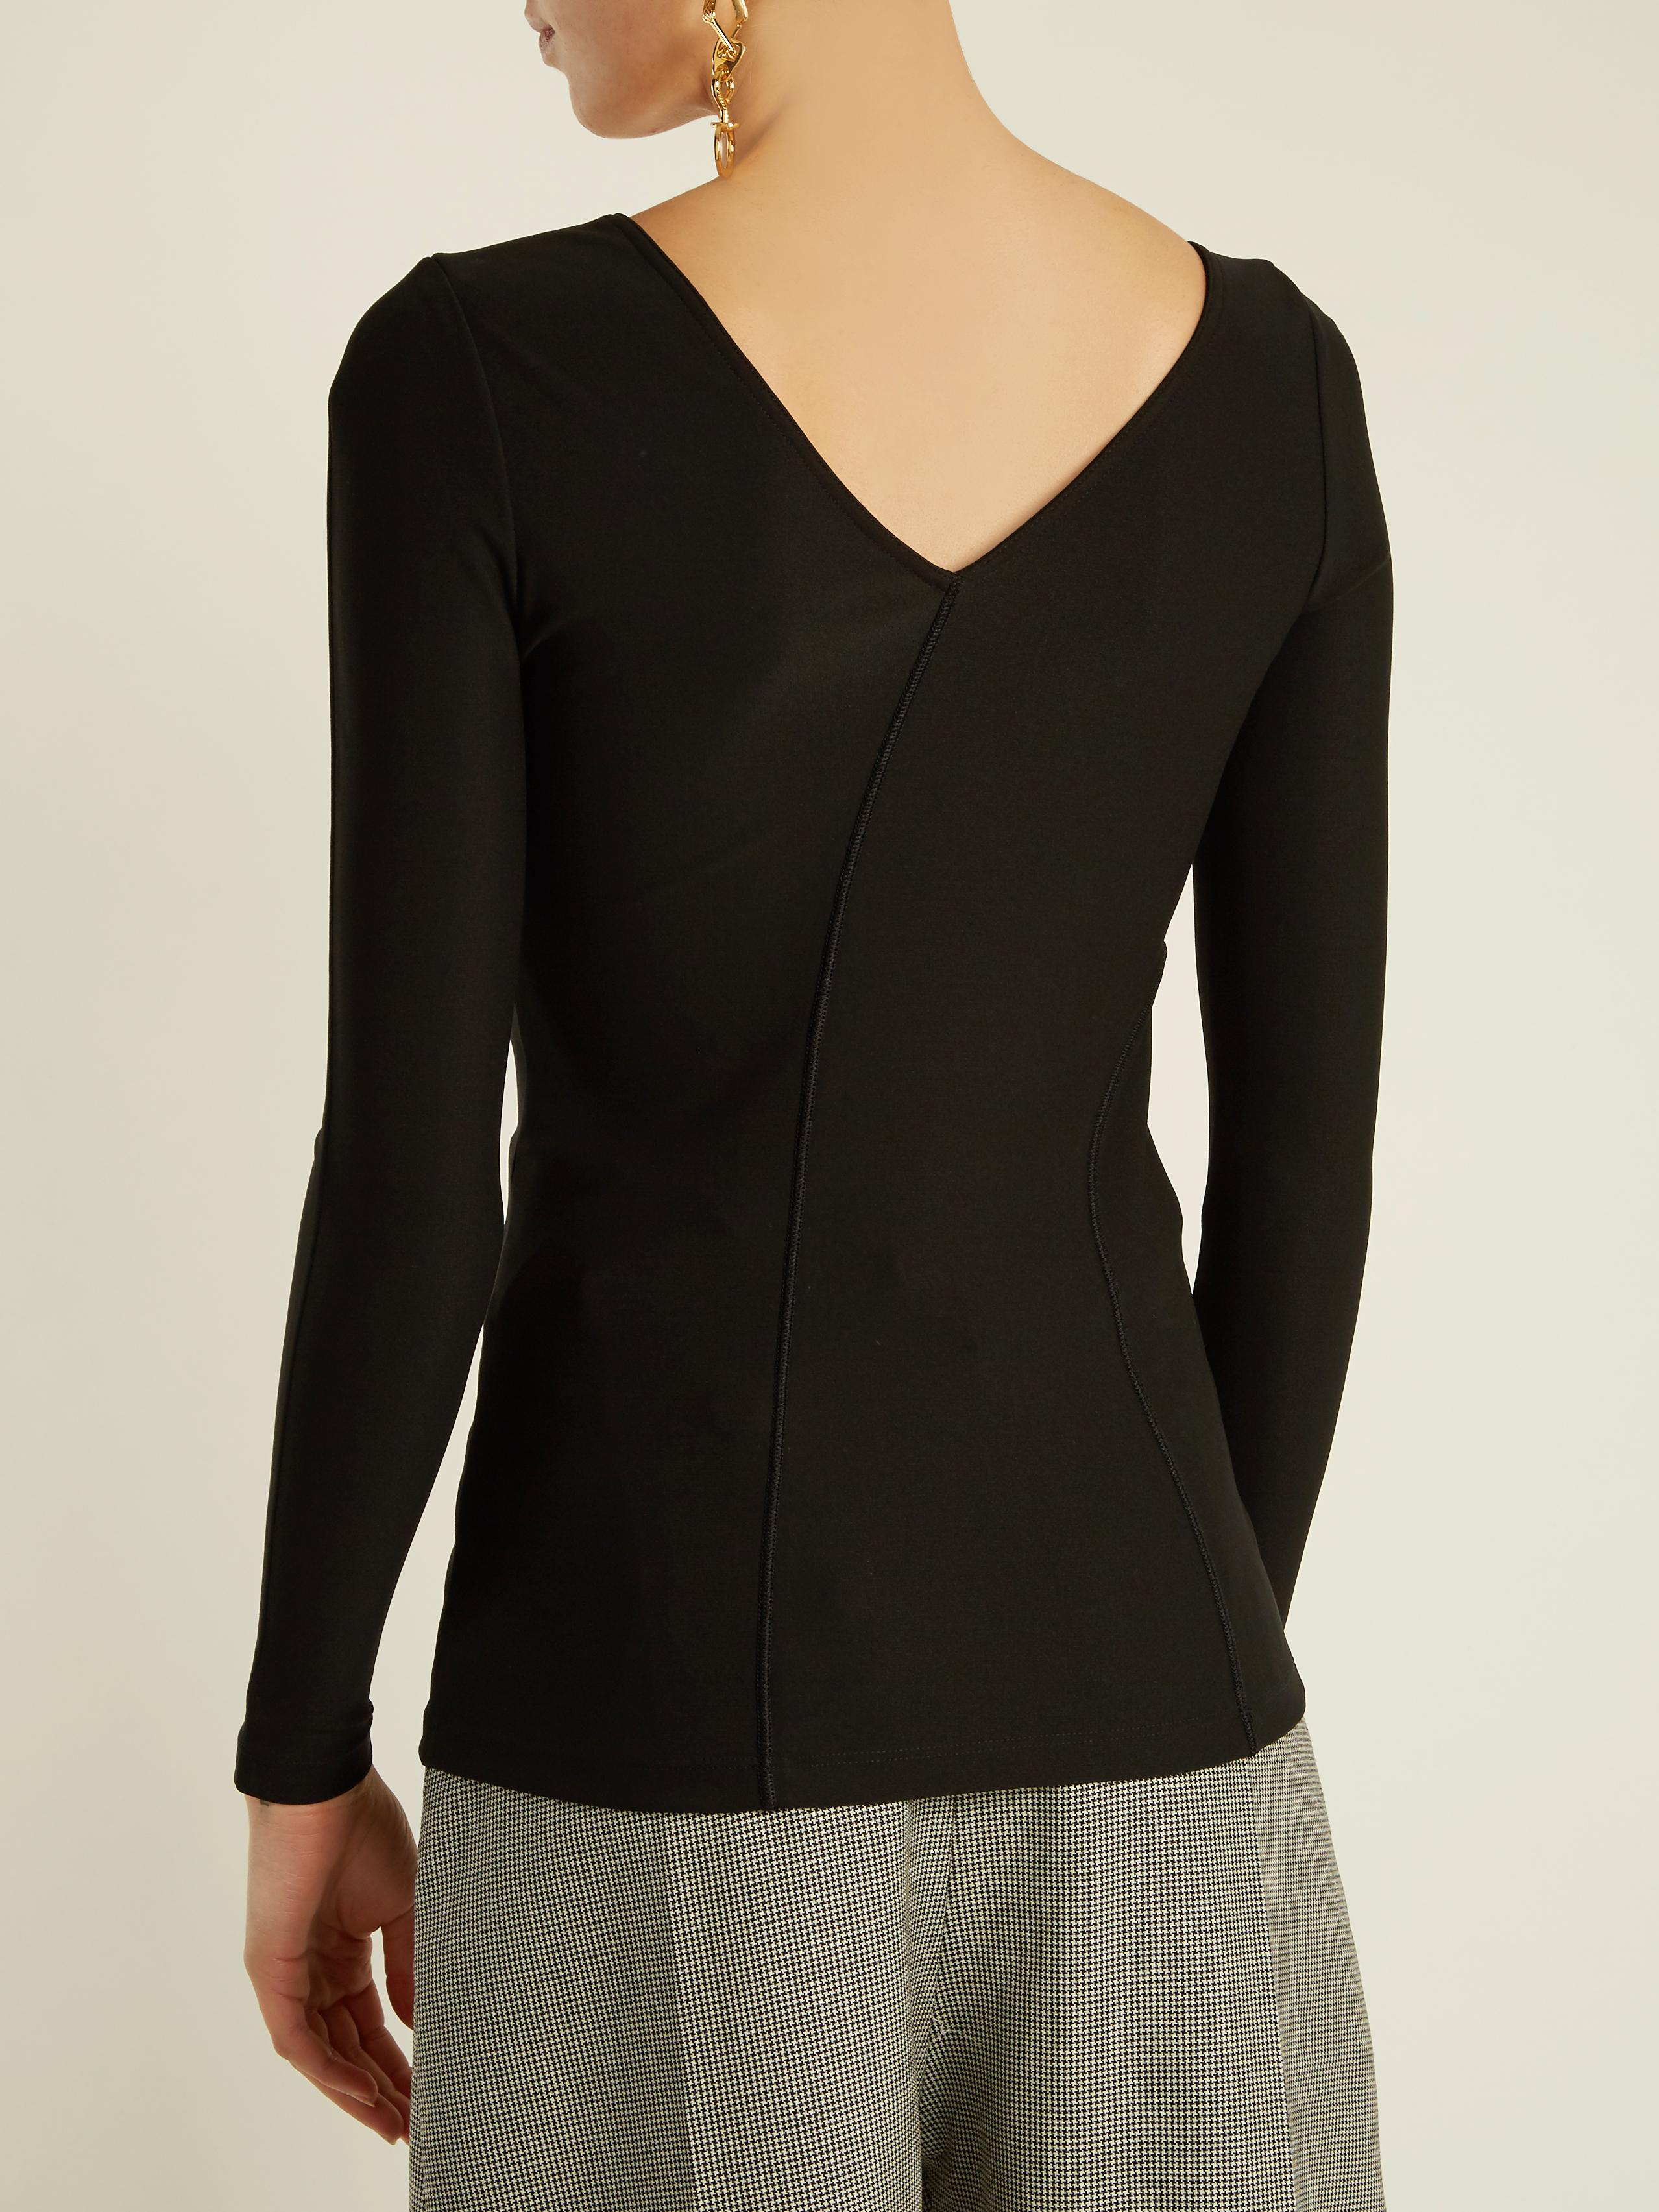 sweetheart neck top - Black Givenchy Affordable Real Cheap Price Discount Purchase Discount Eastbay IL0P7L